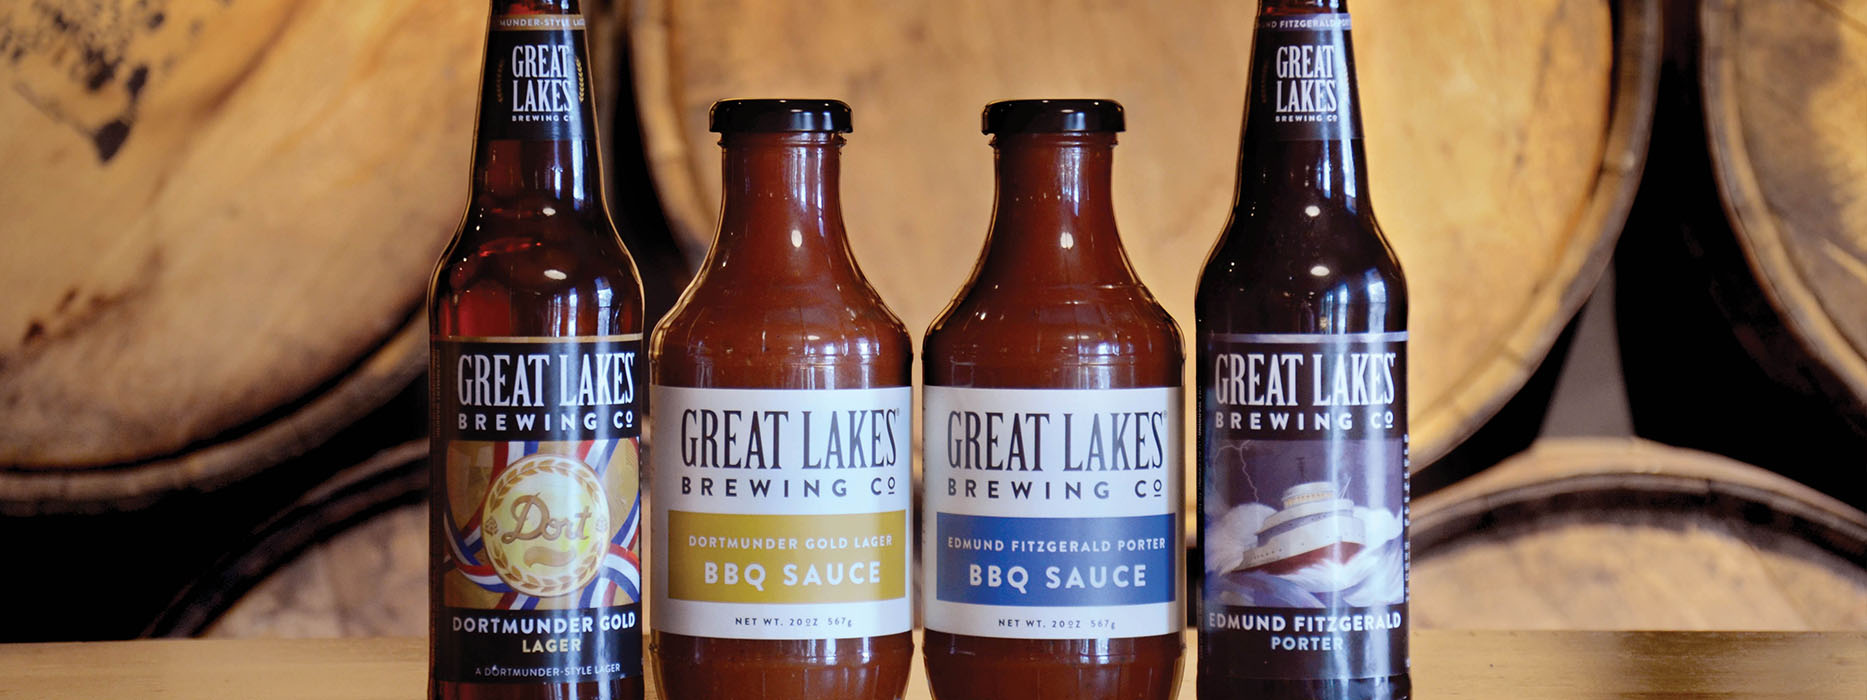 BBQ sauces are proprietary recipes inspired by the beer-infused sauces ...